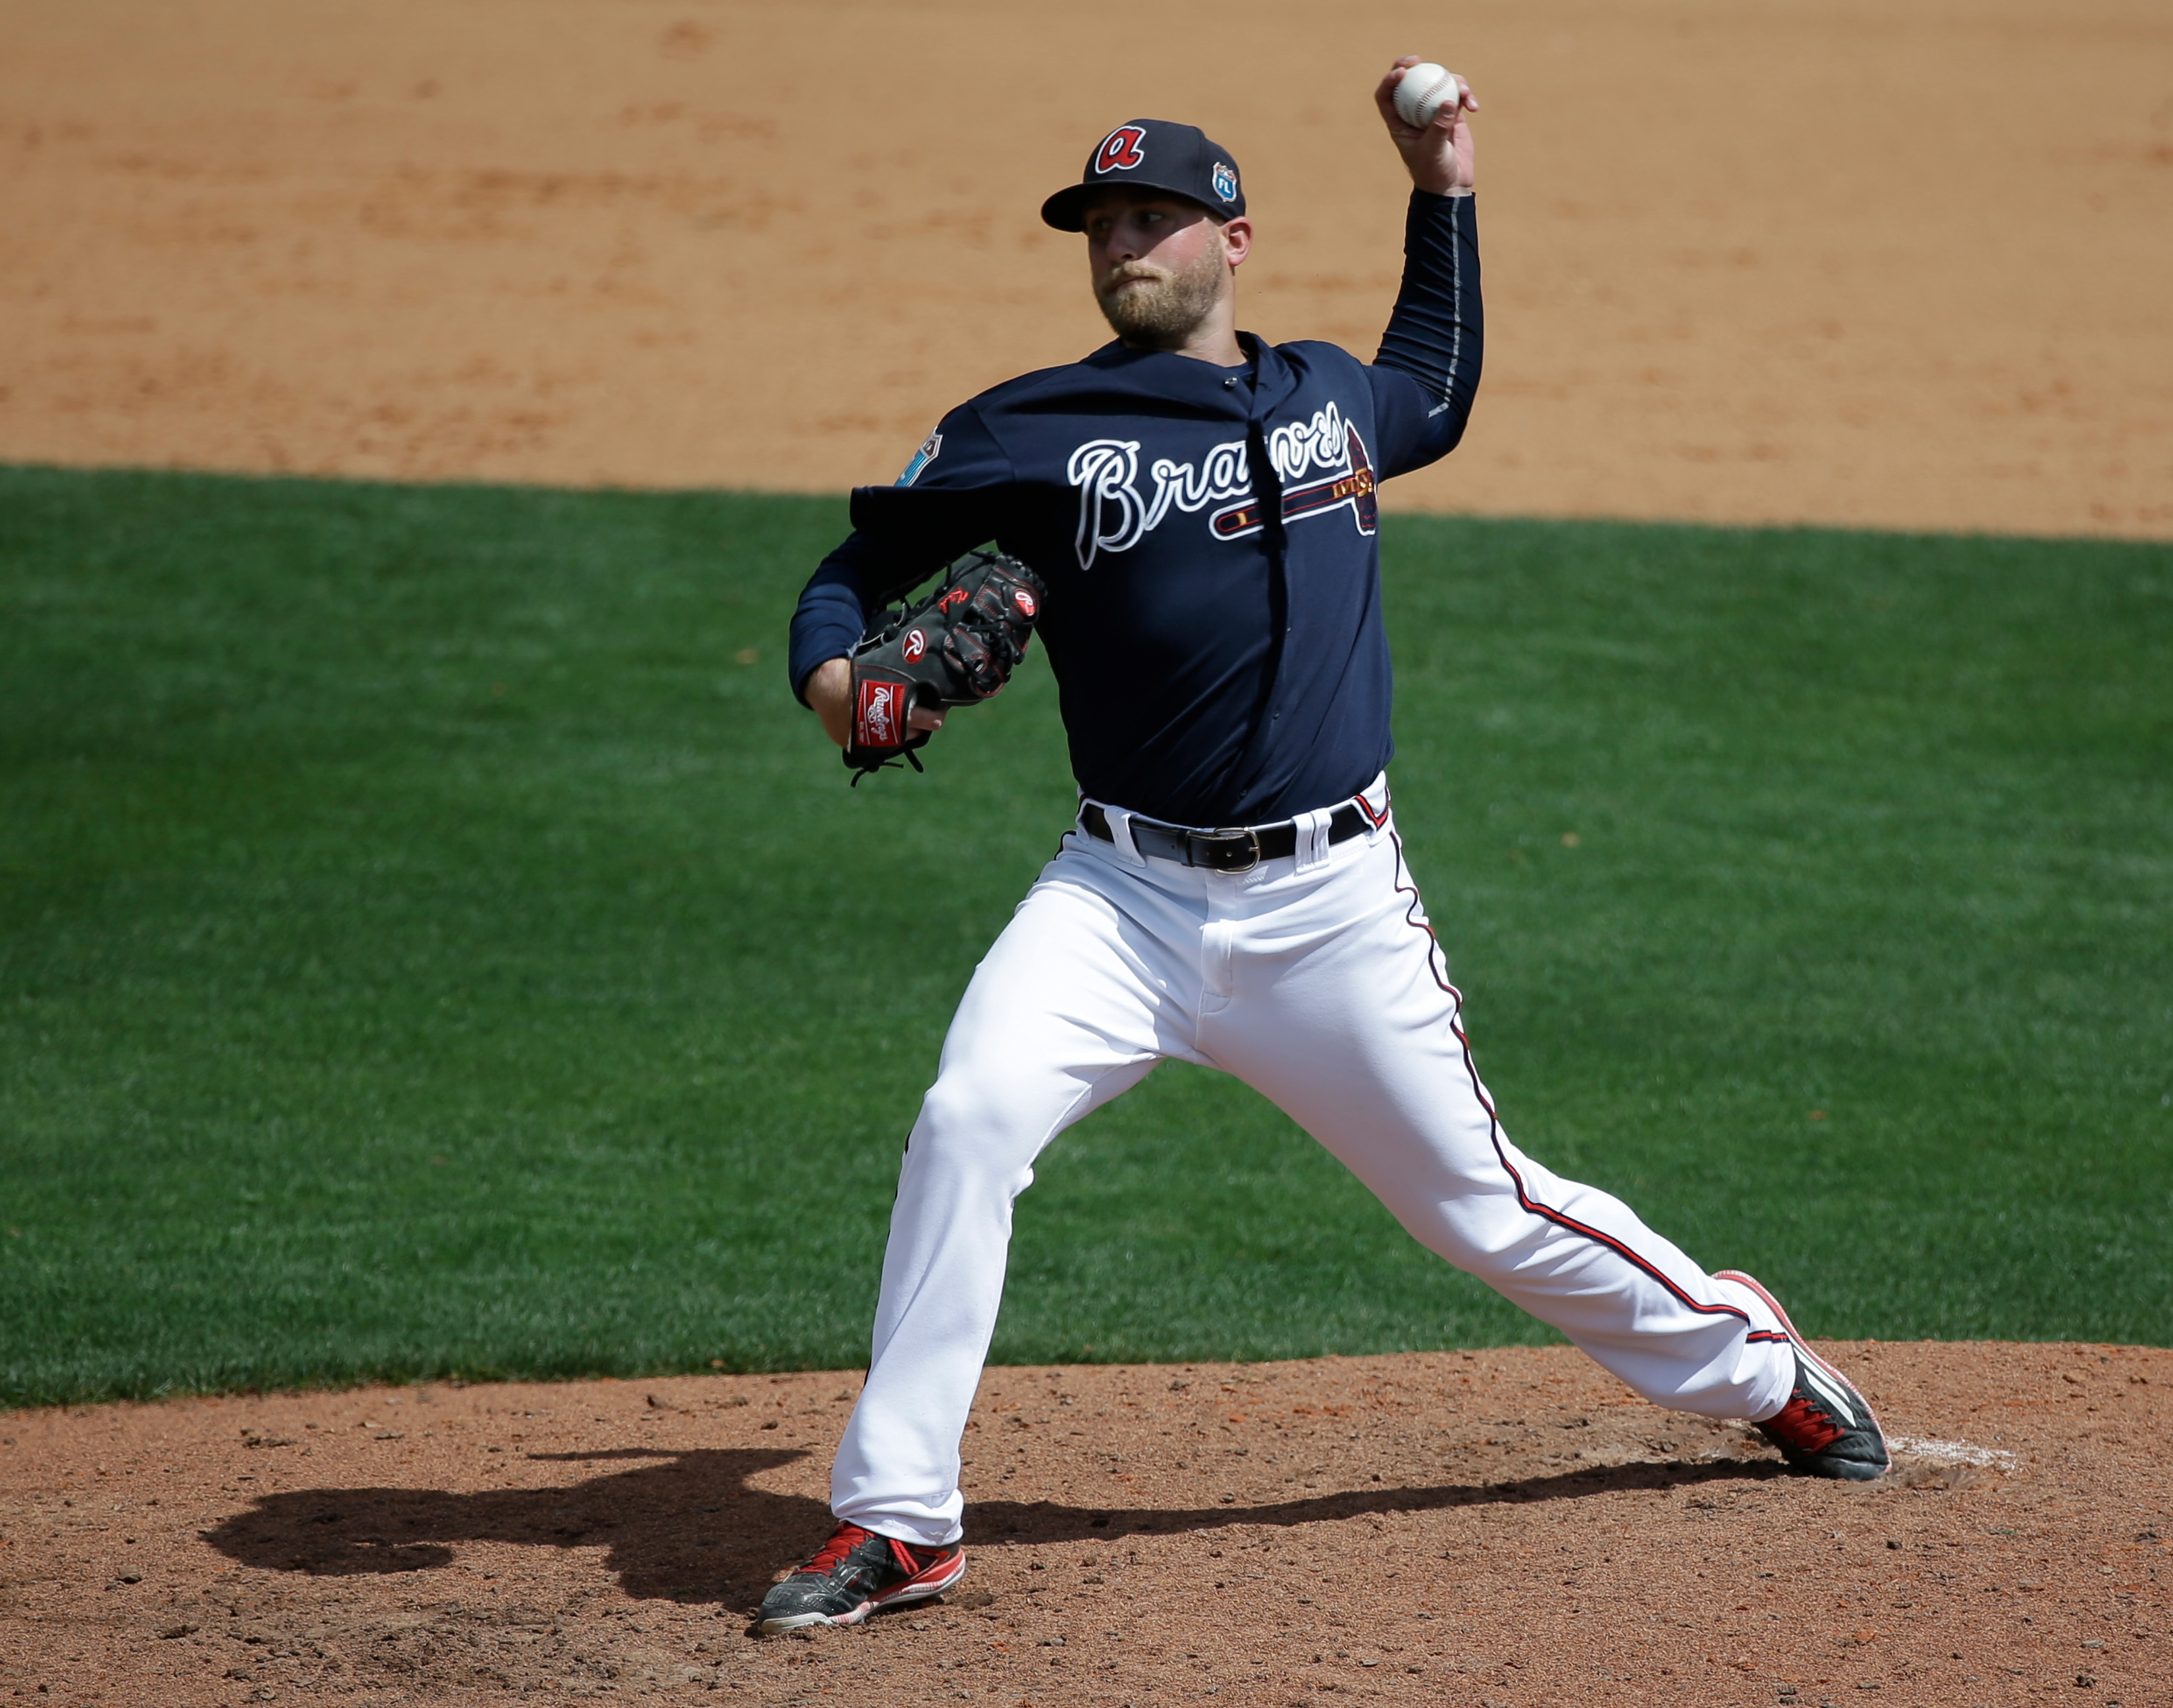 Atlanta Braves' Ian Krol pitches against the St. Louis Cardinals in the sixth inning of a spring training baseball game, Wednesday, March 16, 2016, in Kissimmee, Fla. (AP Photo/John Raoux)